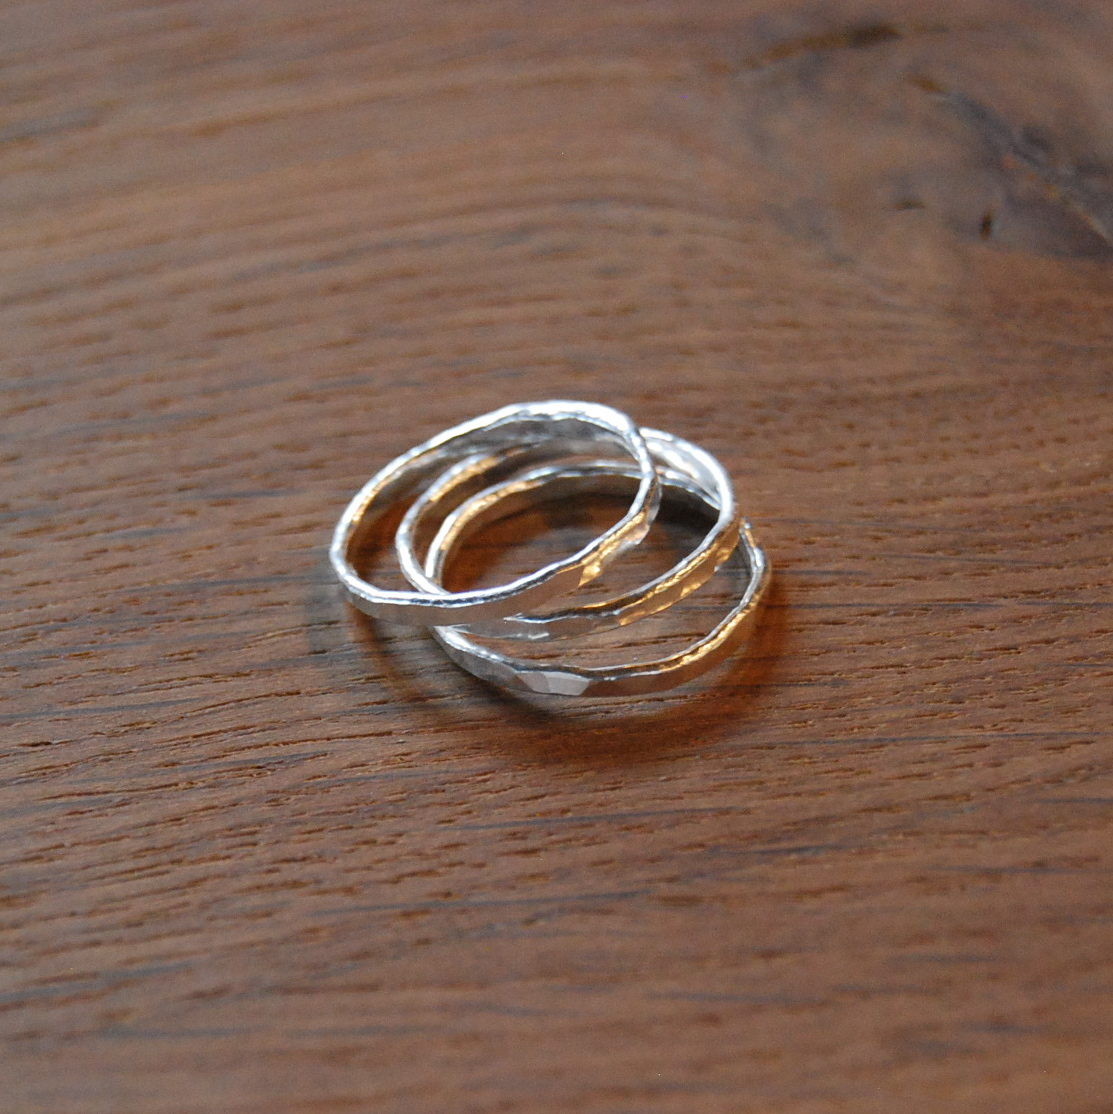 Hammered Stacking Rings :  3 rings are made of fine silver wire, fused, and hammered.